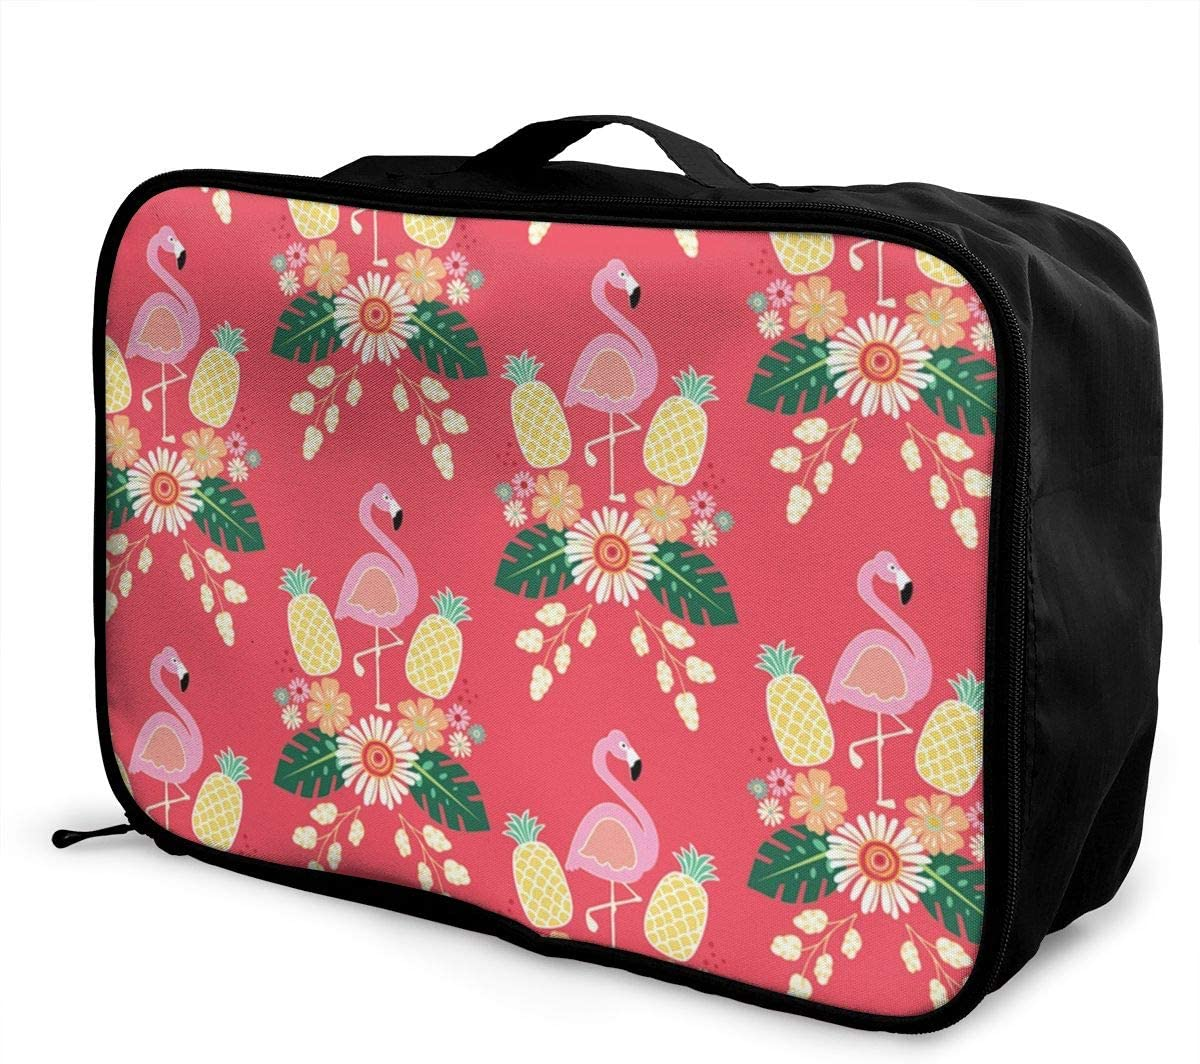 Pink-plaid-pattern Travel Carry-on Luggage Weekender Bag Overnight Tote Flight Duffel In Trolley Handle